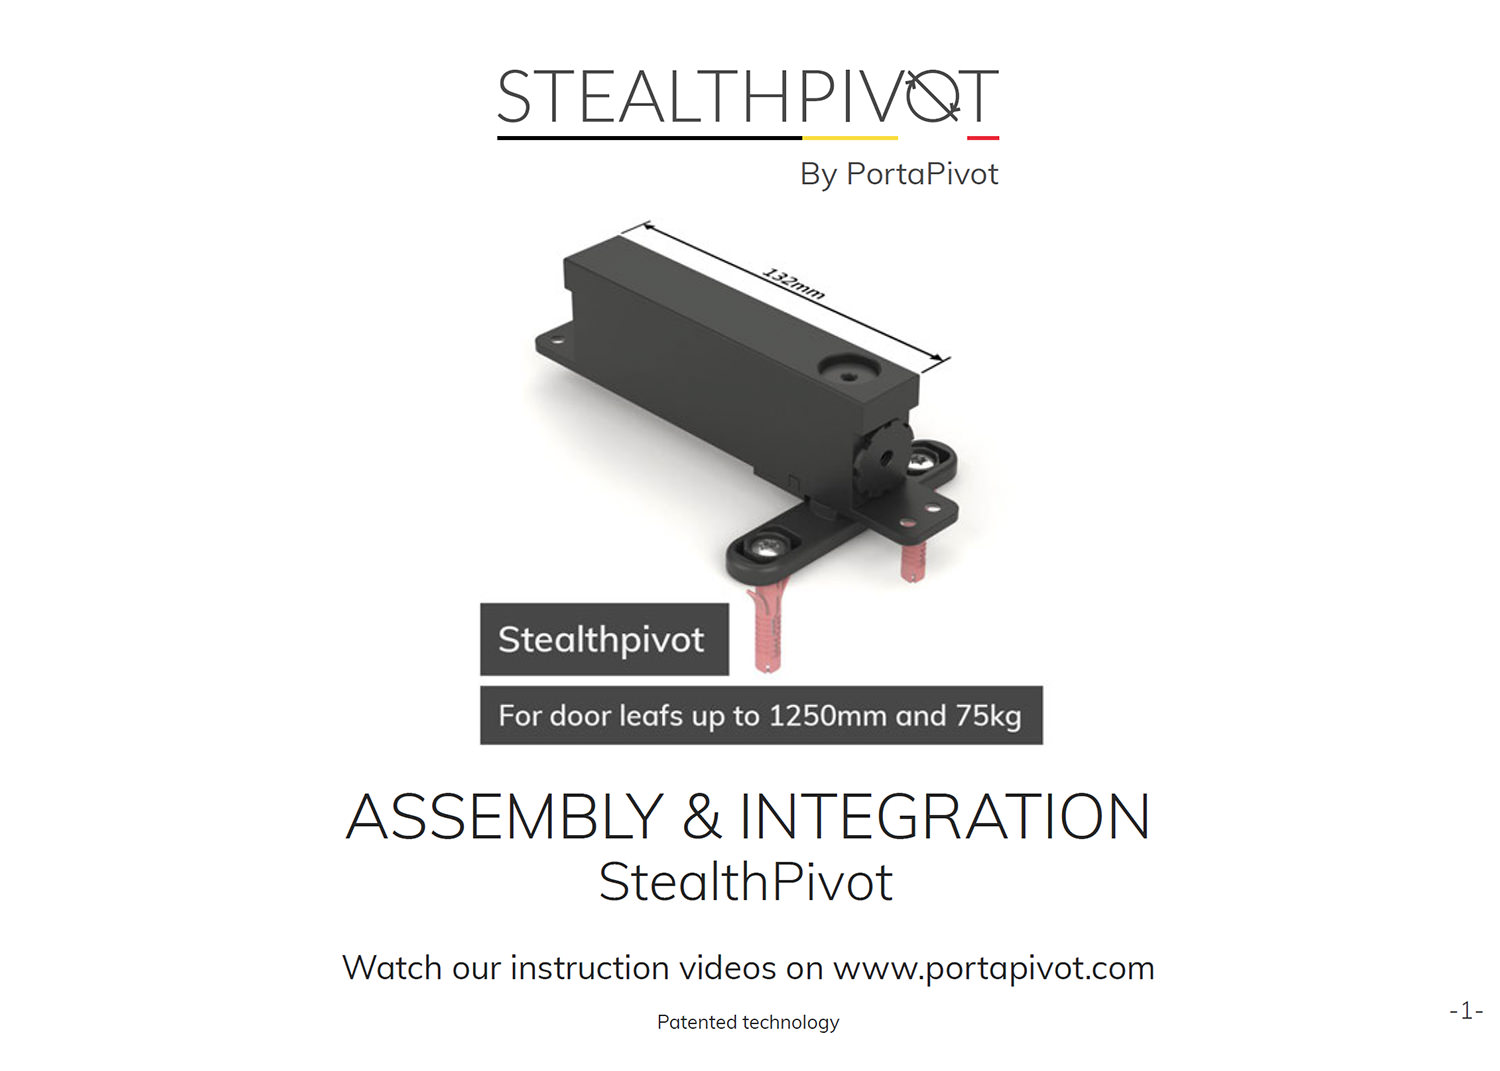 Stealth pivot normal assembly and installation manual